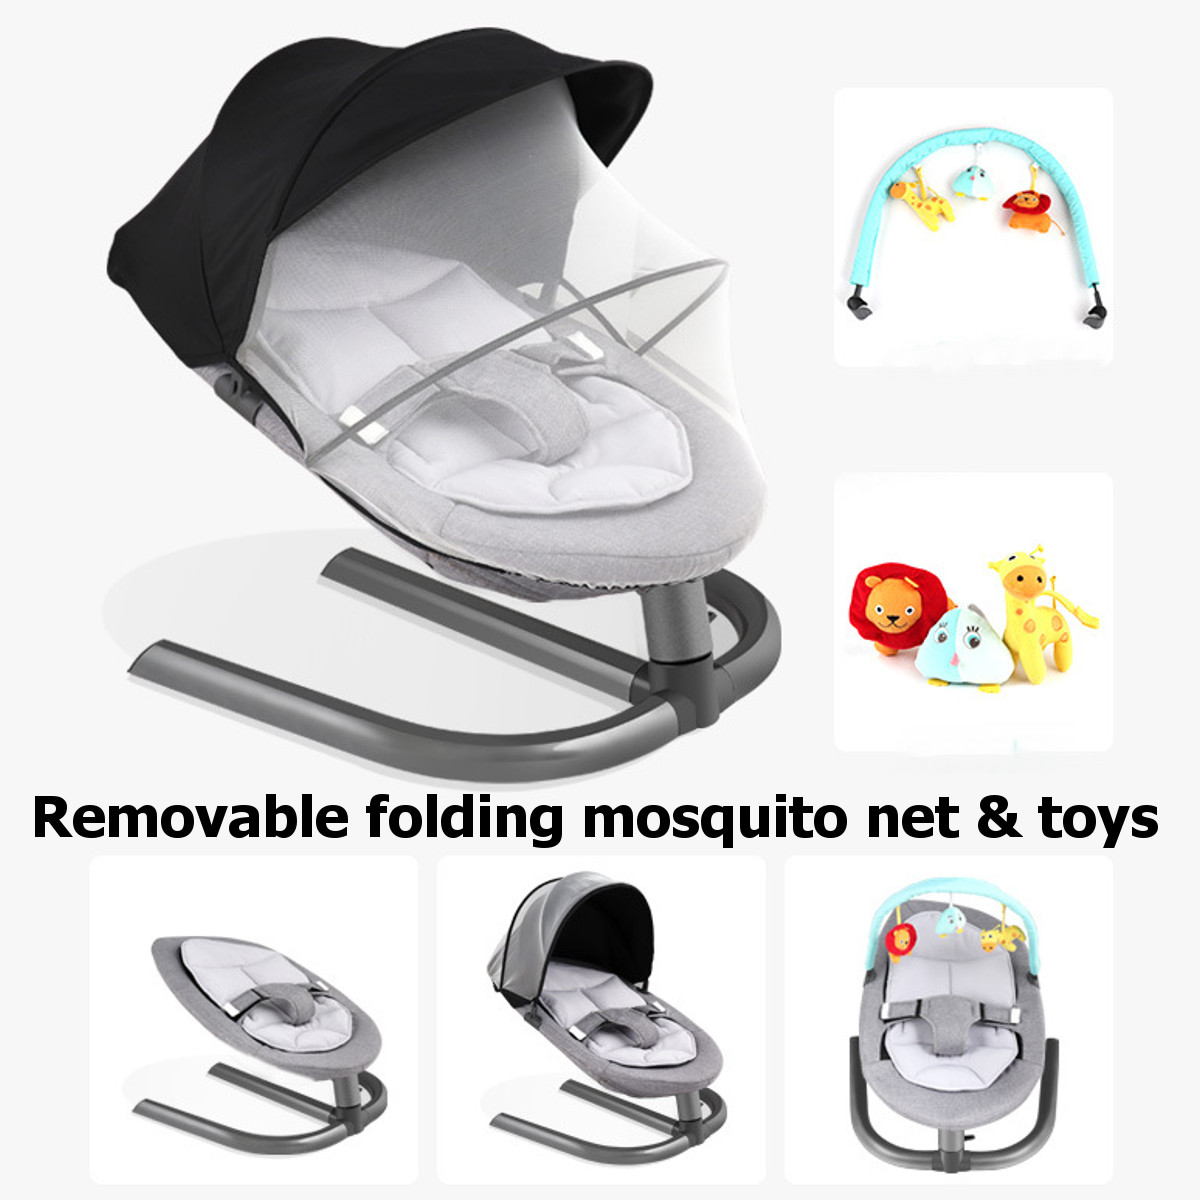 Hb5a11460d1134784a68be9adbc35bc84T Newborn Electric Swing Multifunctional  Baby Bouncer Cradle Rocking Chair With Mosquito Net Cradle Crib Sleeping Safety Basket